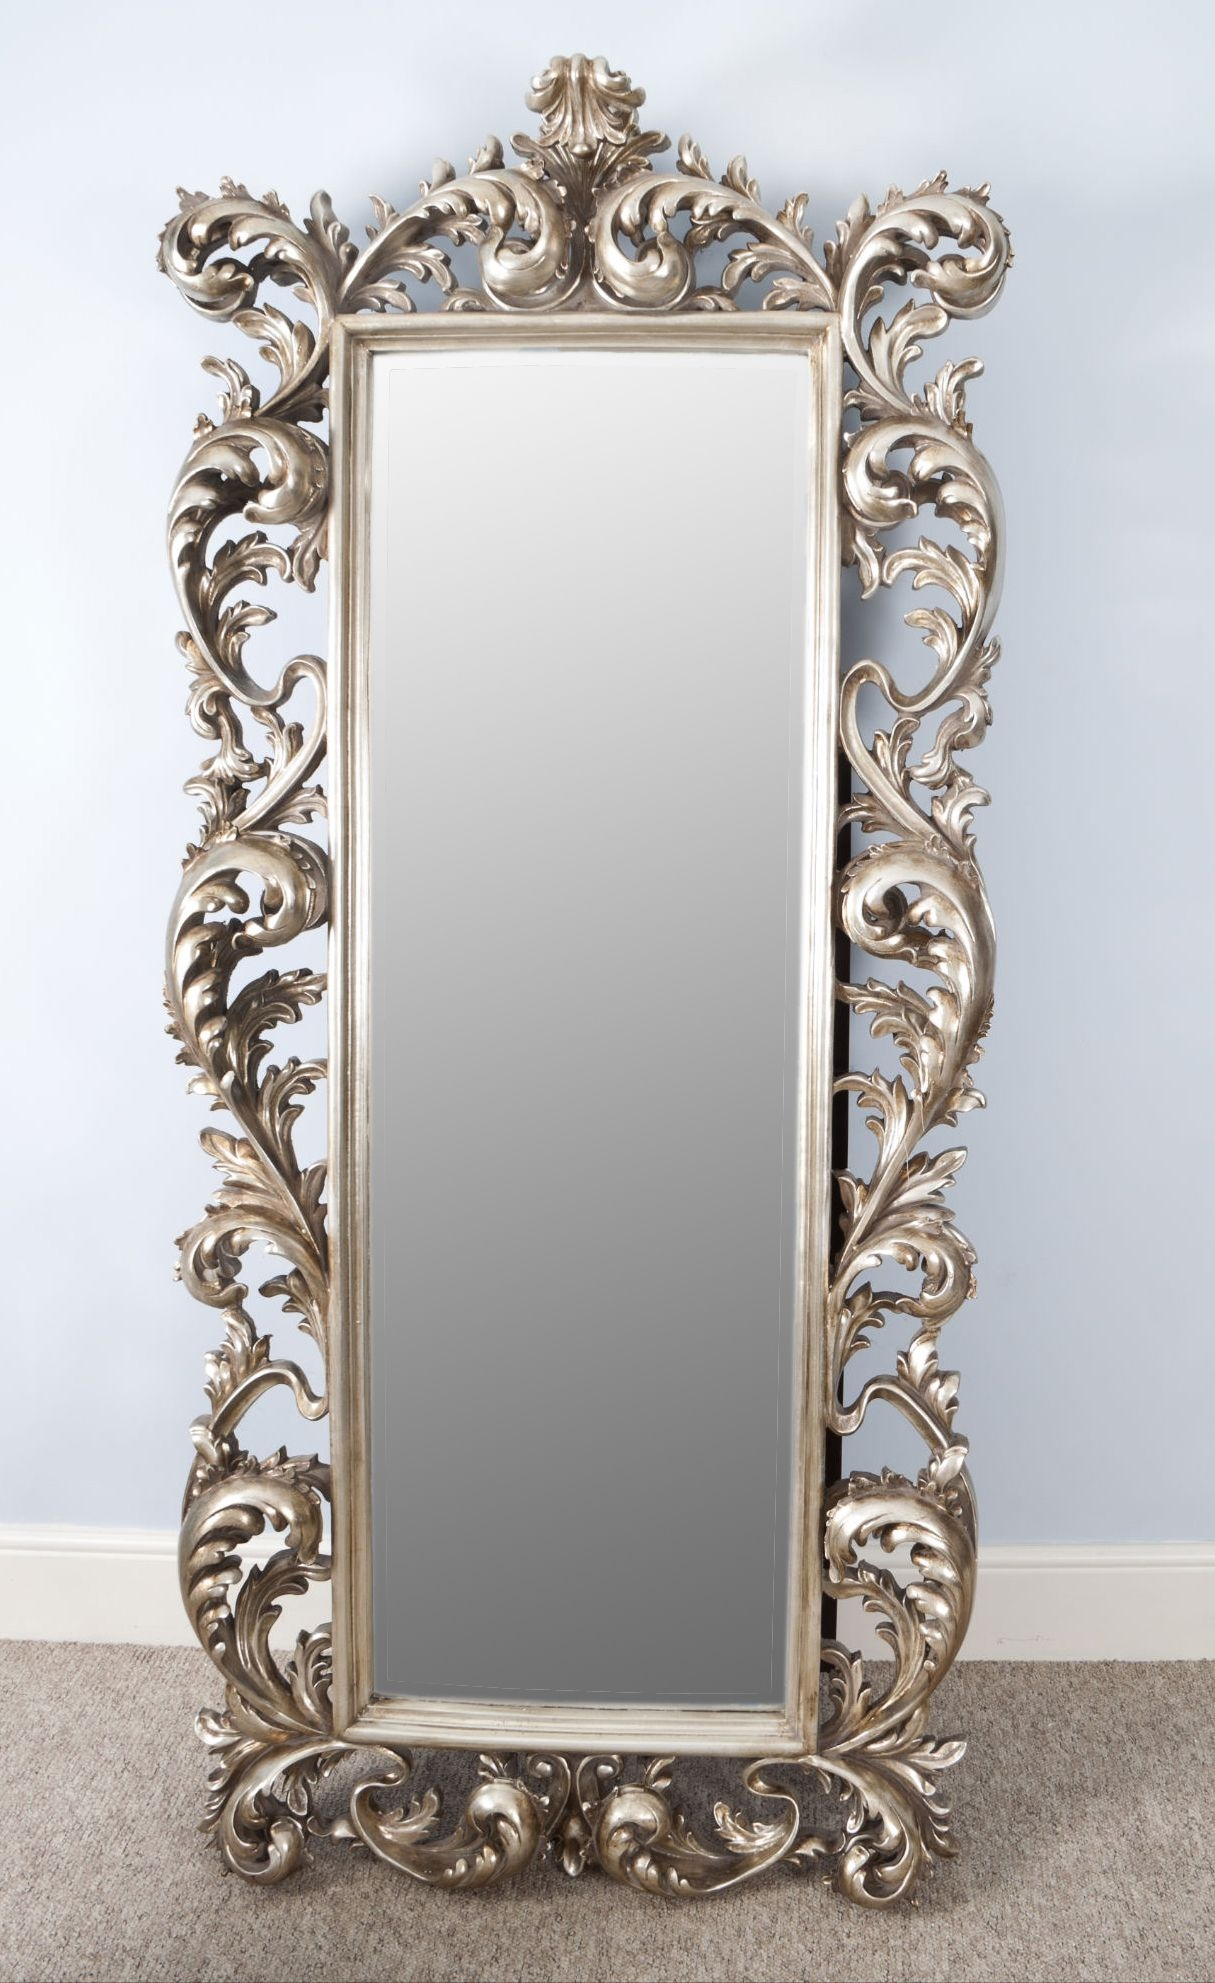 Classic Impression On Antique Wall Mirrors Vwho For Silver Vintage Mirror (Image 2 of 15)